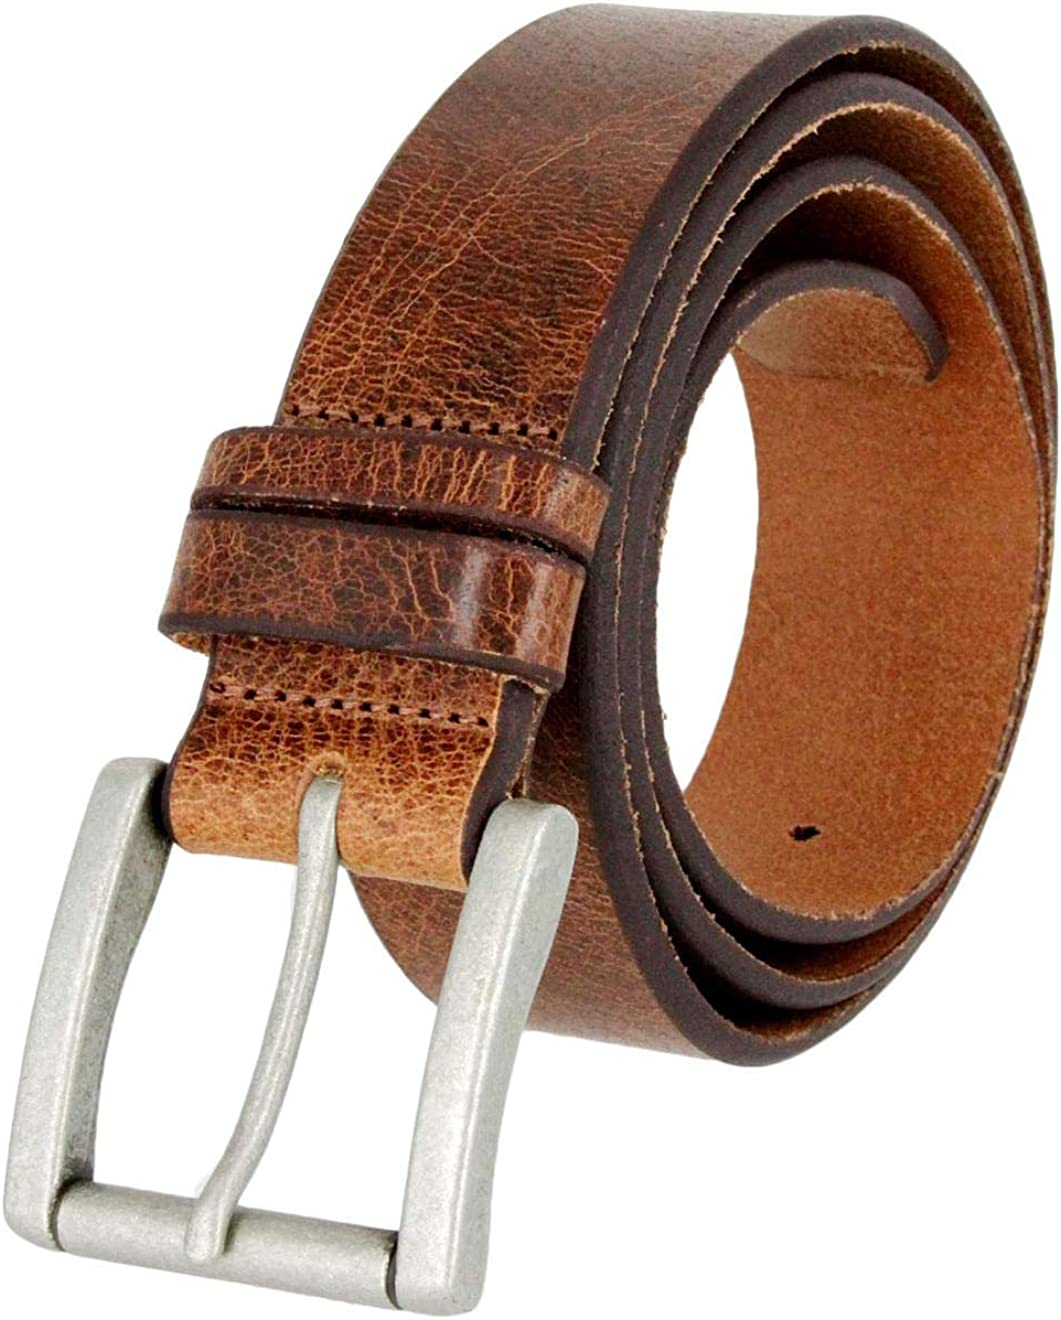 1-1//2 New Western Casual Jean Vintage Leather Belt Tan Color